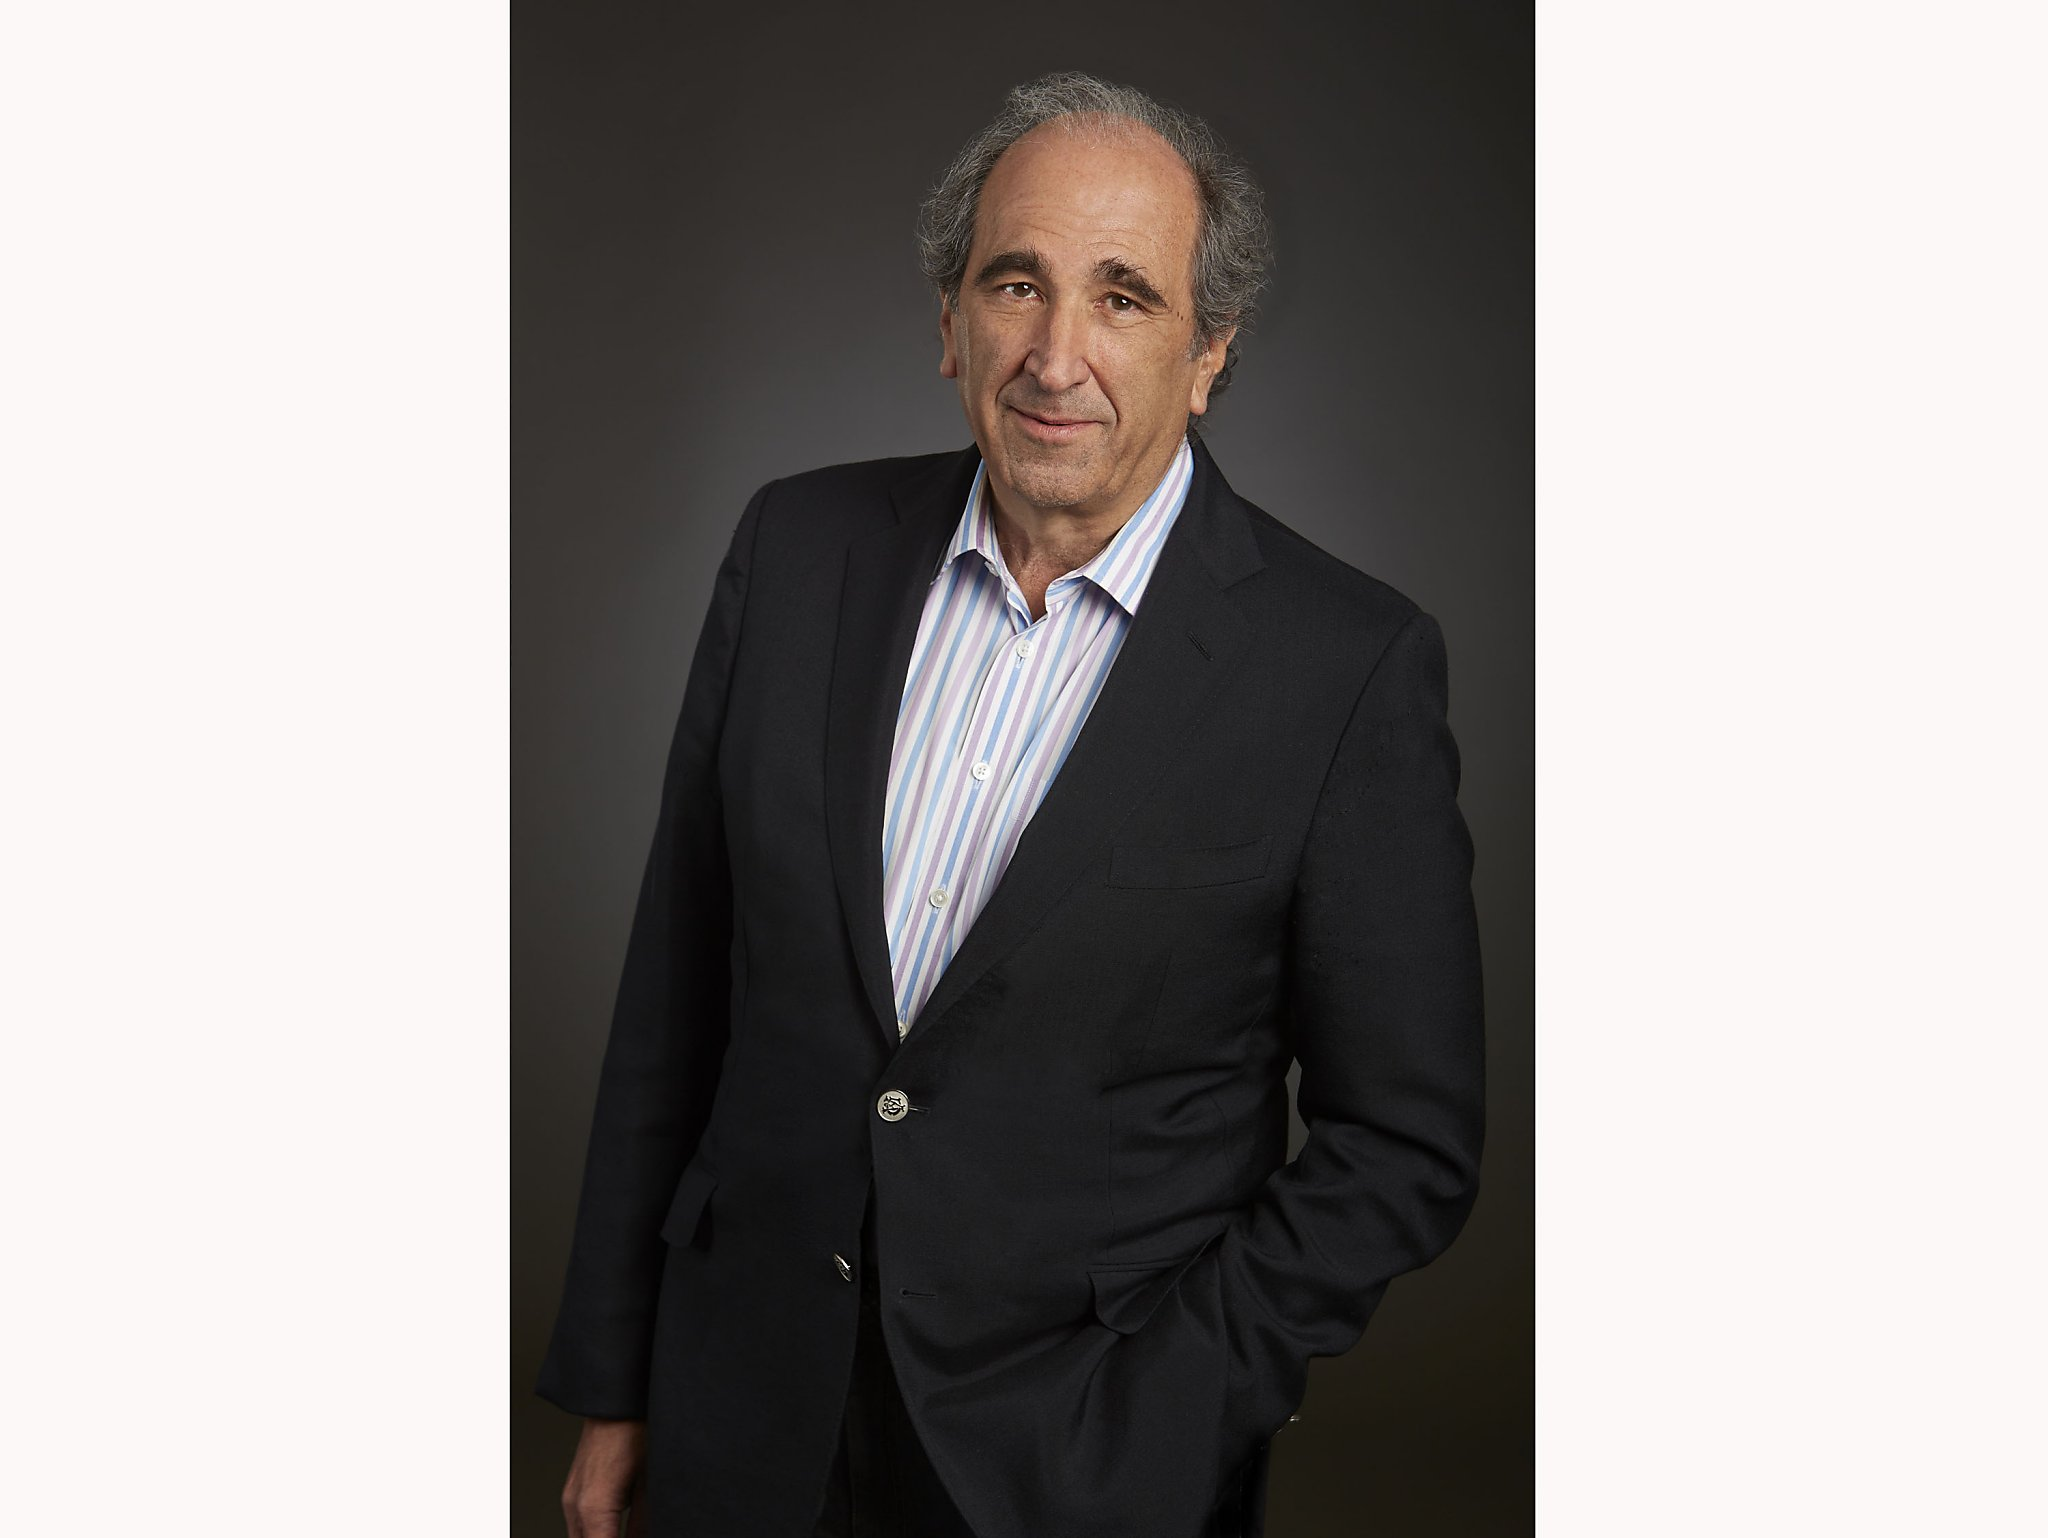 Andy Lack, longtime NBC News and MSNBC executive, steps down from chairmanship after internal, external criticism - SF Gate thumbnail